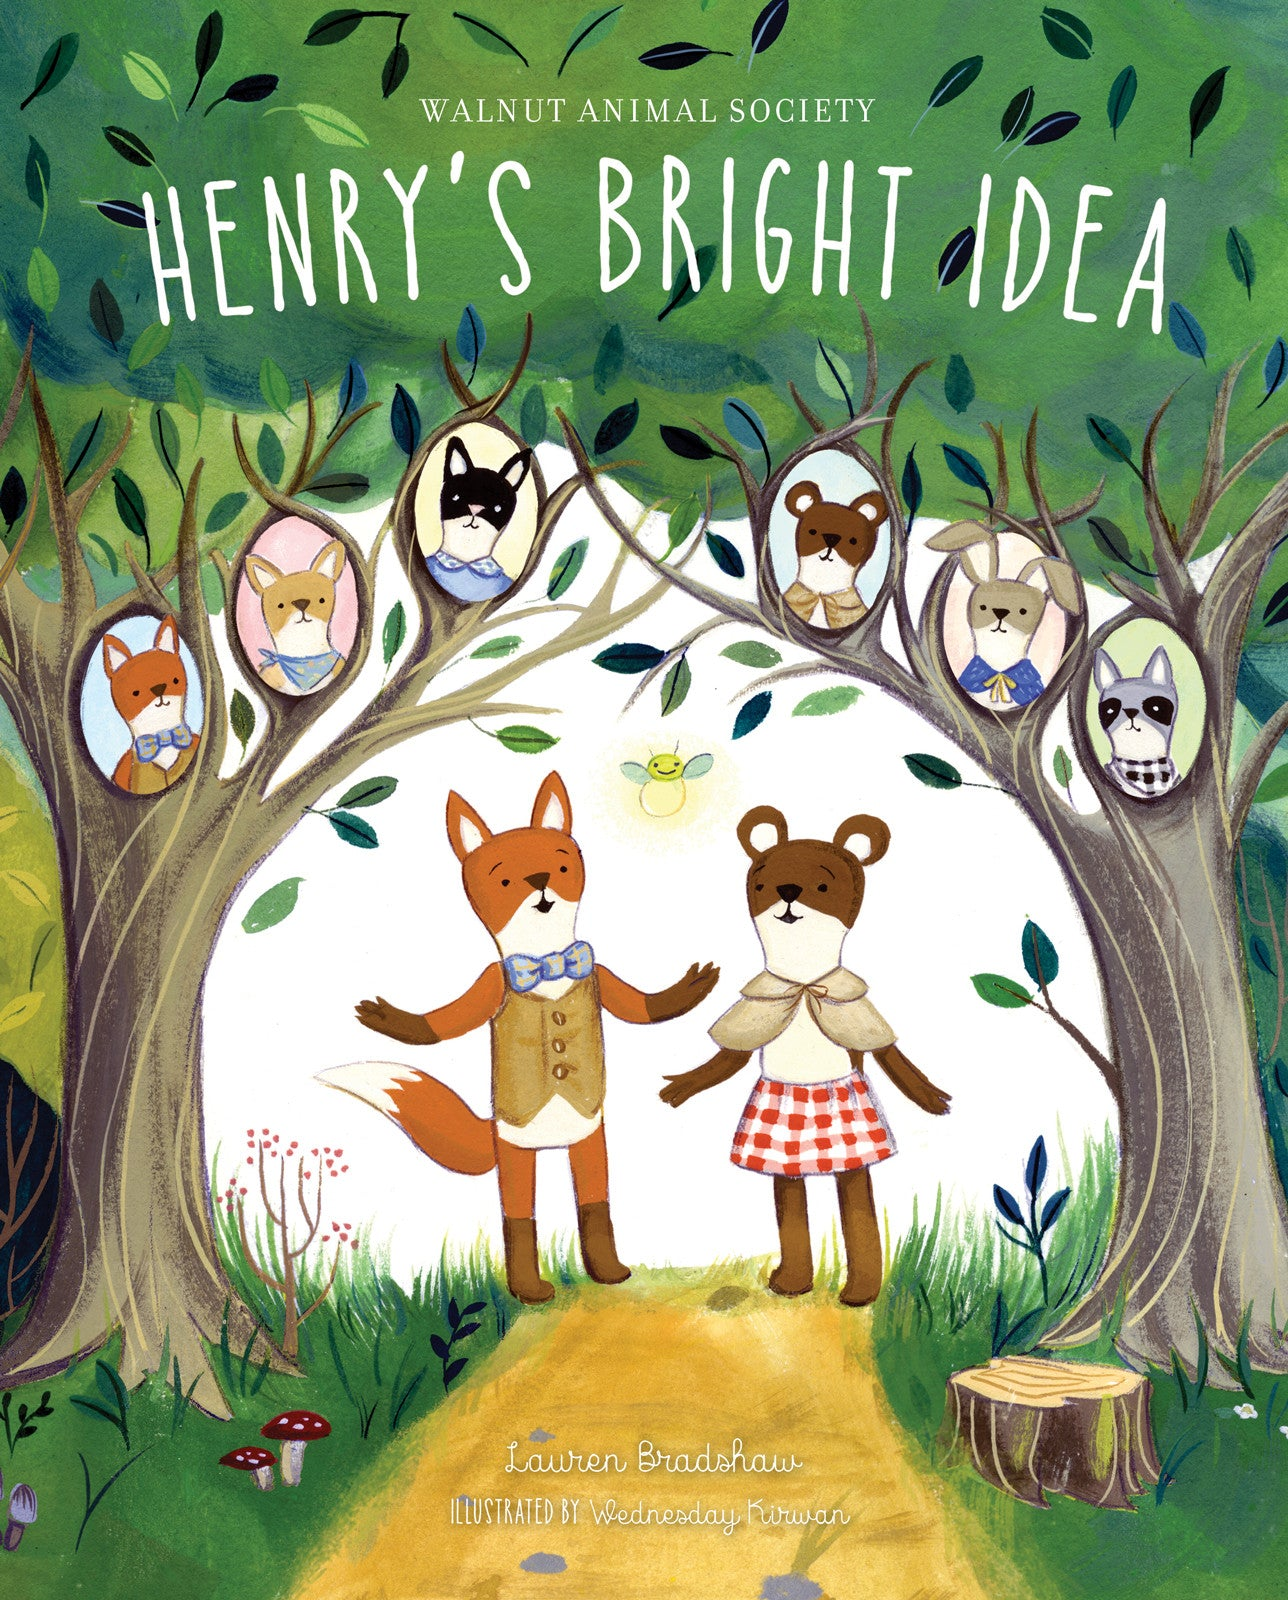 Henry's Bright Idea (signed)